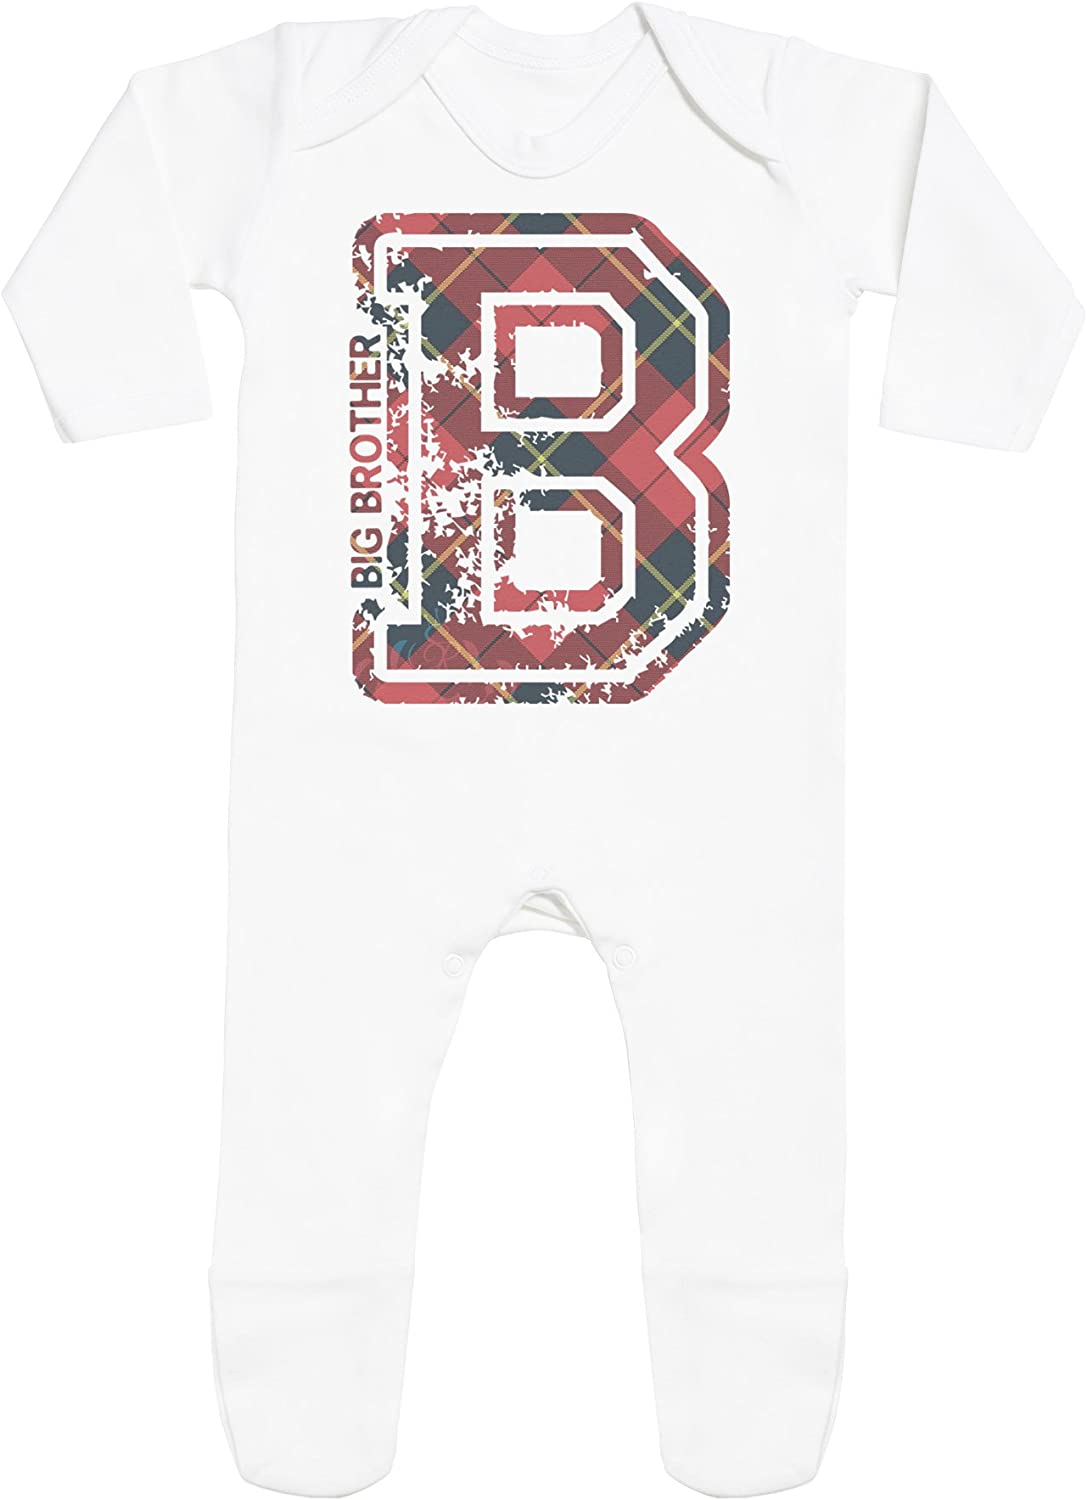 B for Big Brother Baby Rompersuit with Feet Baby Romper Baby Sleepsuit Baby Jumpsuit Baby Rompersuit SR